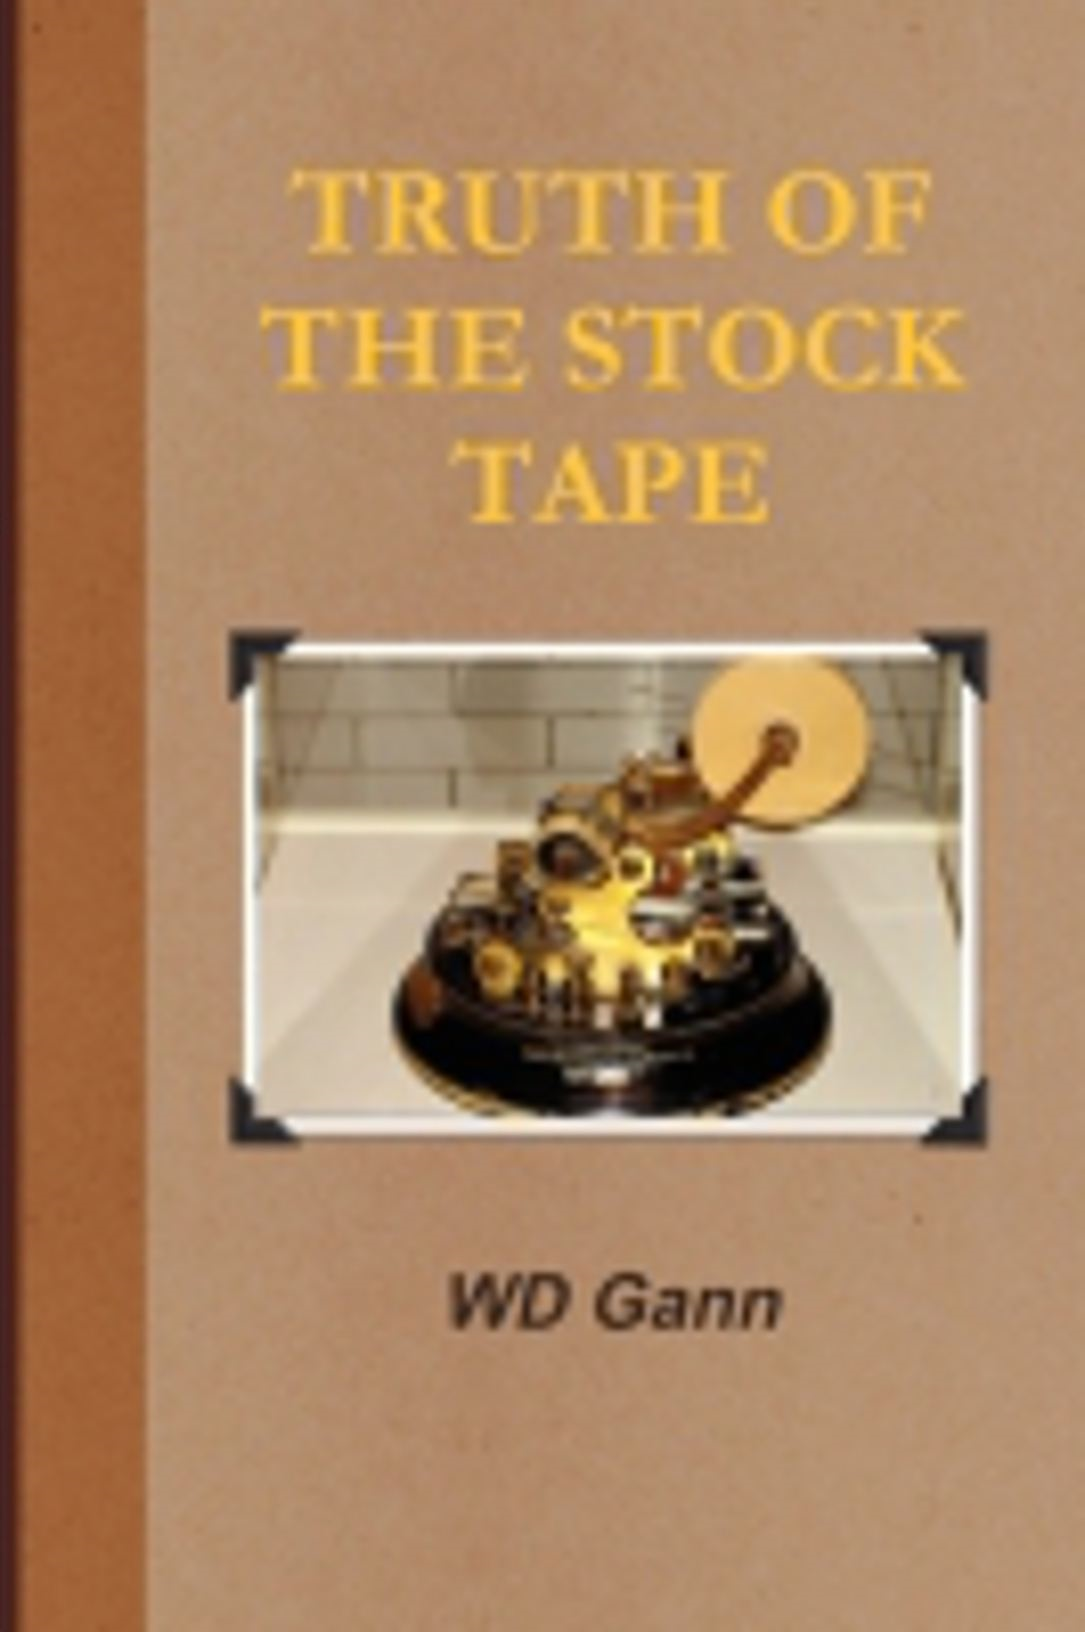 Truth of the Stock Tape (With Introduction to Financial Astrology)